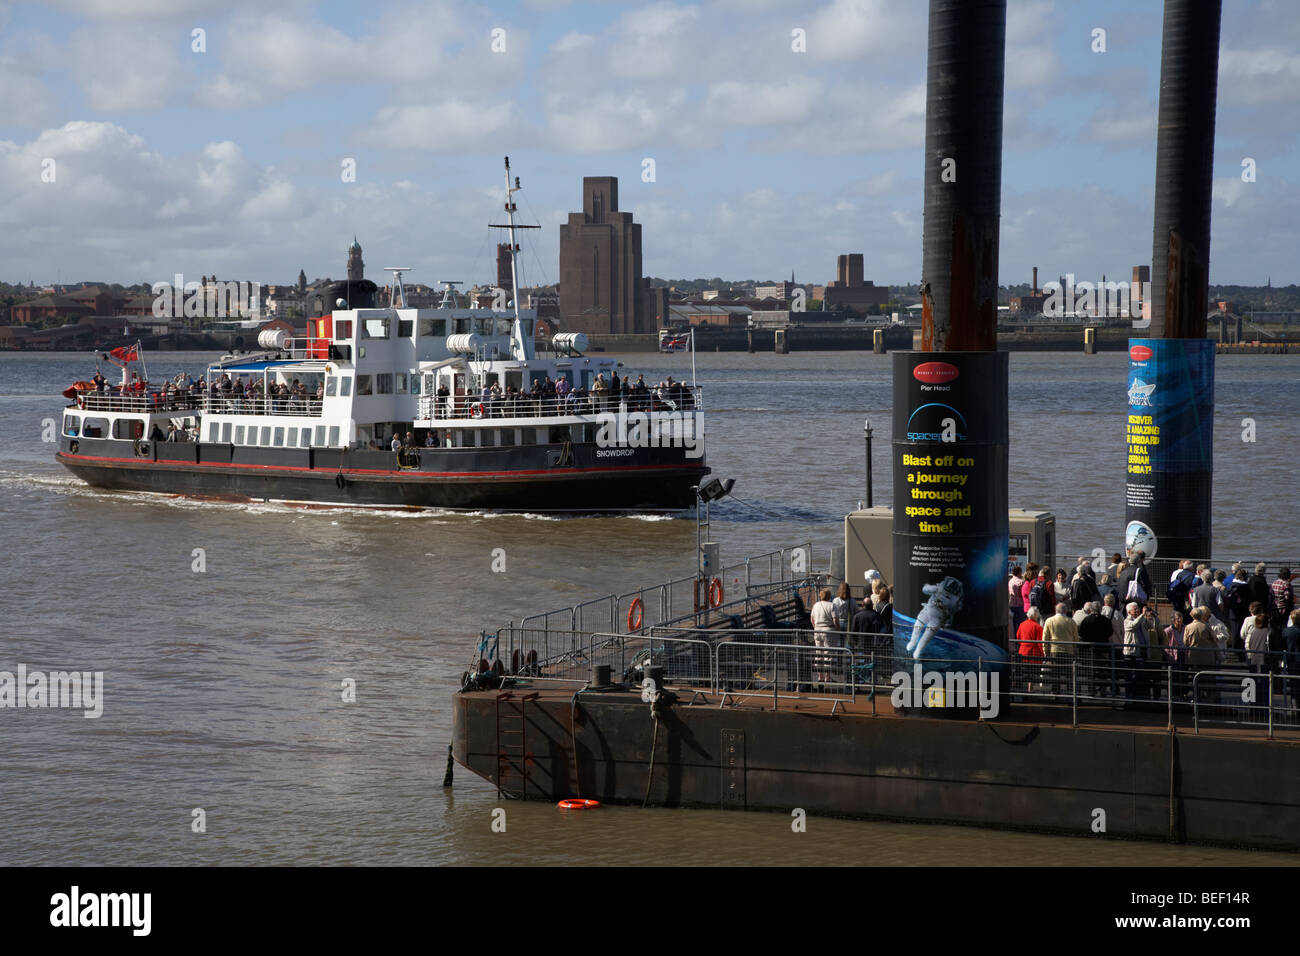 tourists and commuters queue up at the pier head floating ferry terminal for the mersey ferry on the river mersey - Stock Image